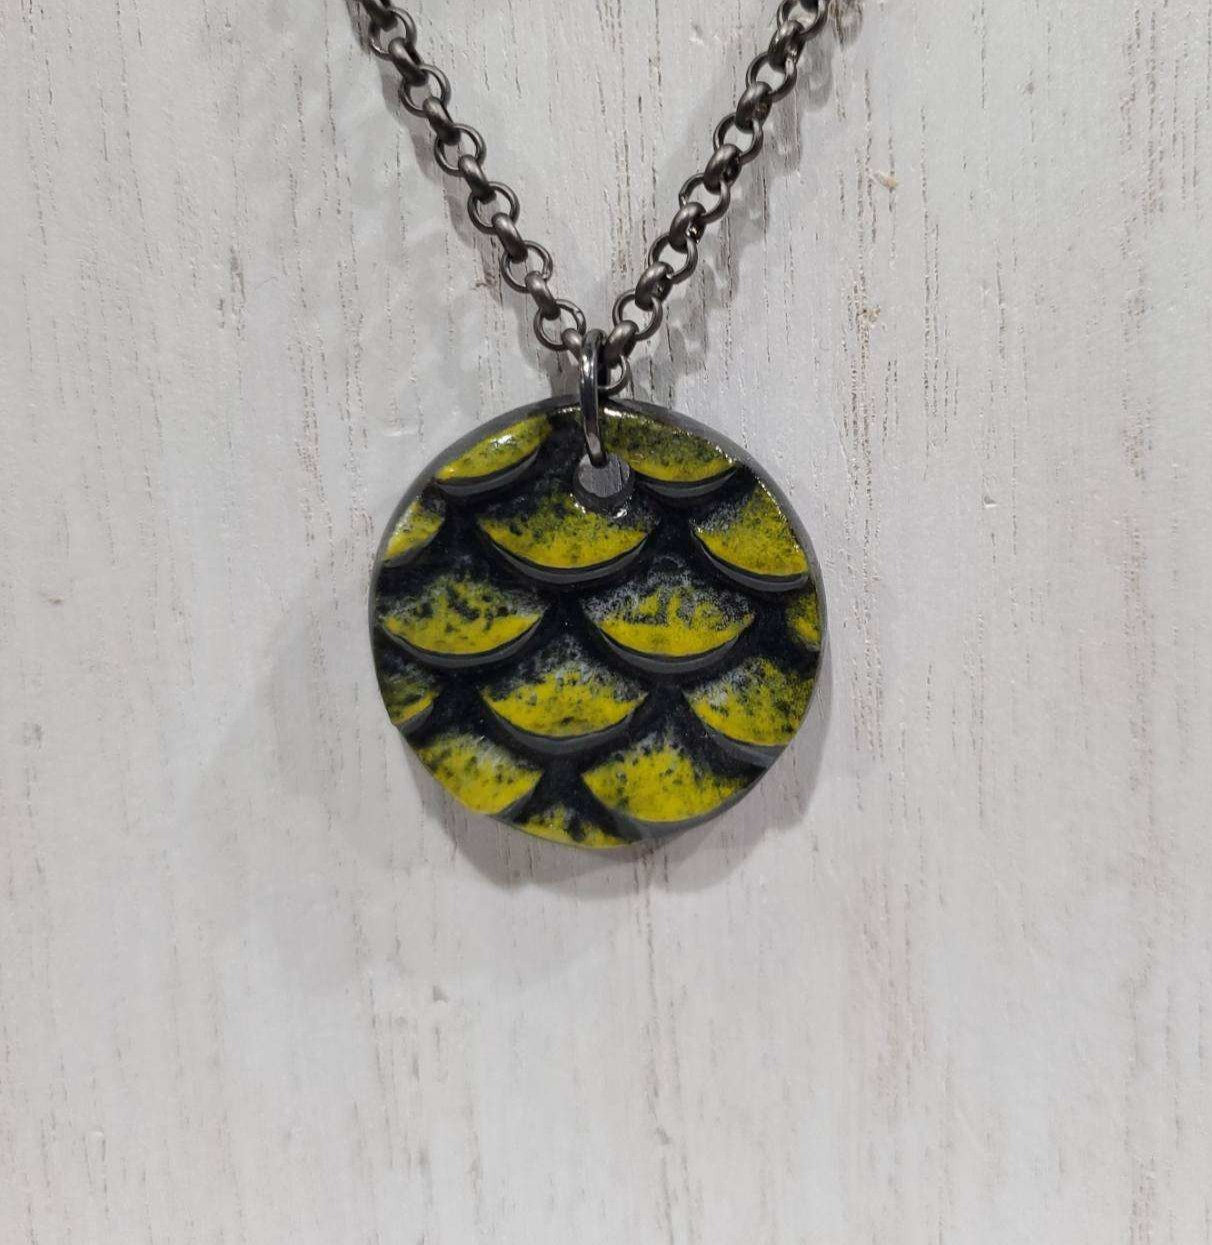 Friday Evening 6-8pm Clay Jewelry